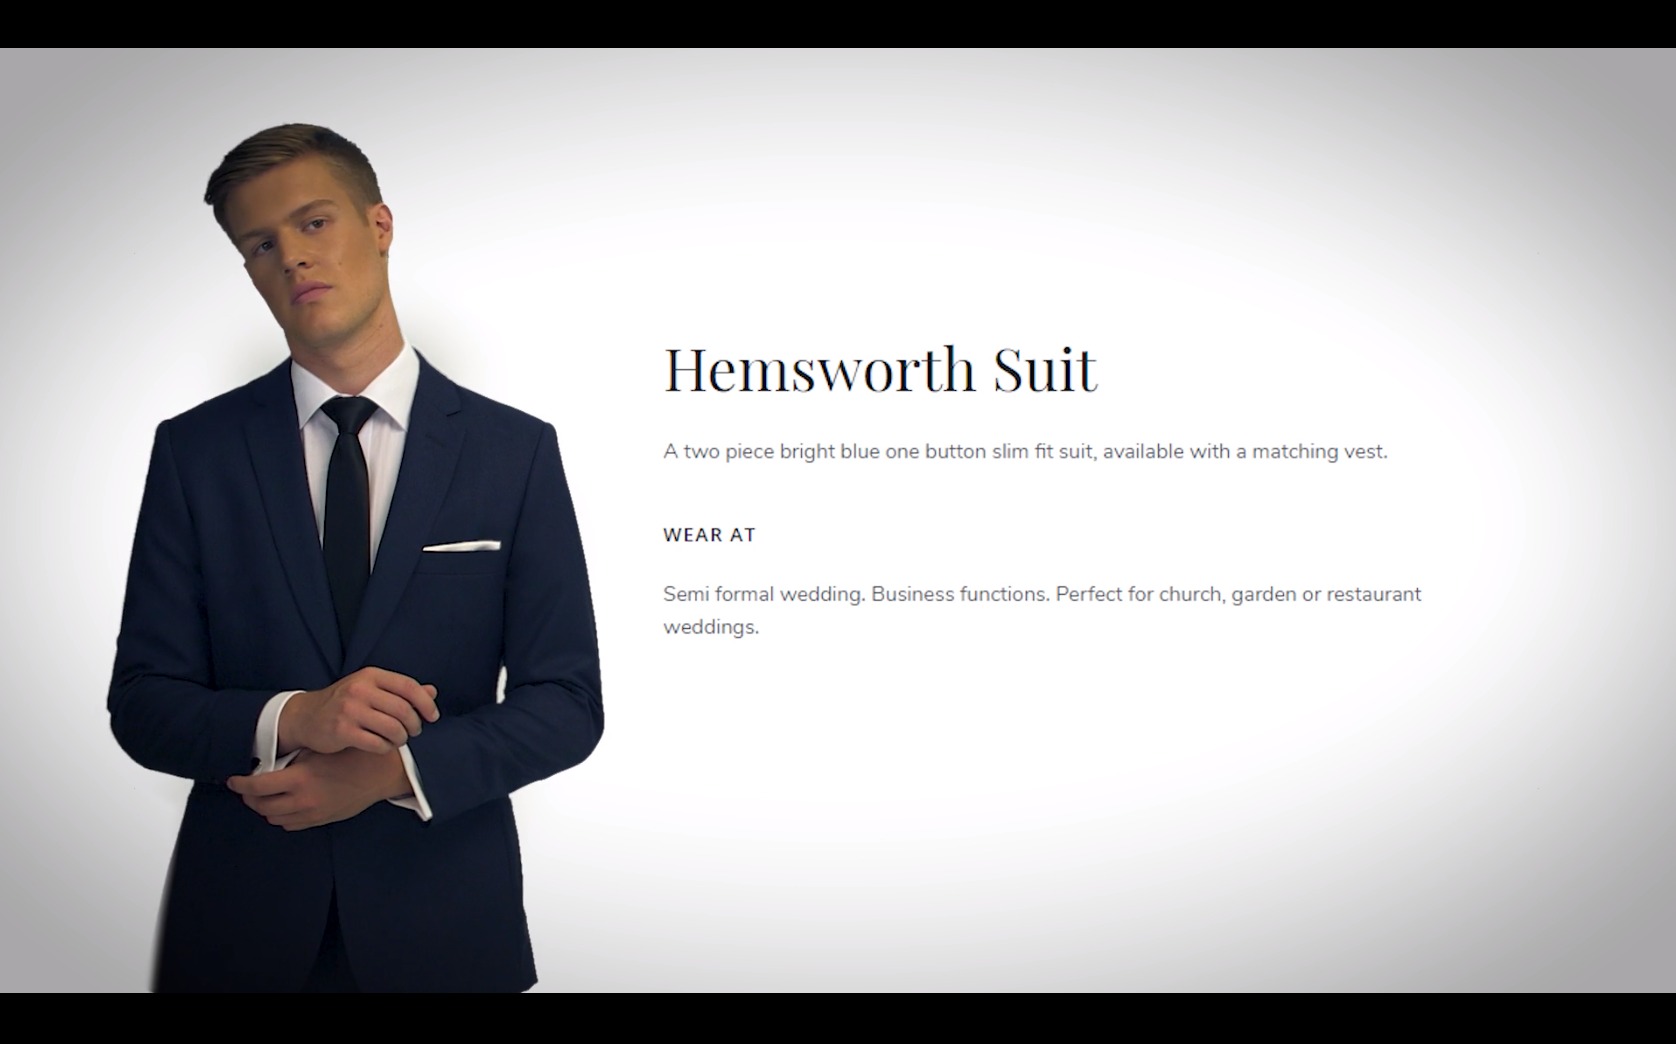 2018-05-10 00_28_17-Rundle Tailoring Hire Suit - Brand Video on Vimeo.png